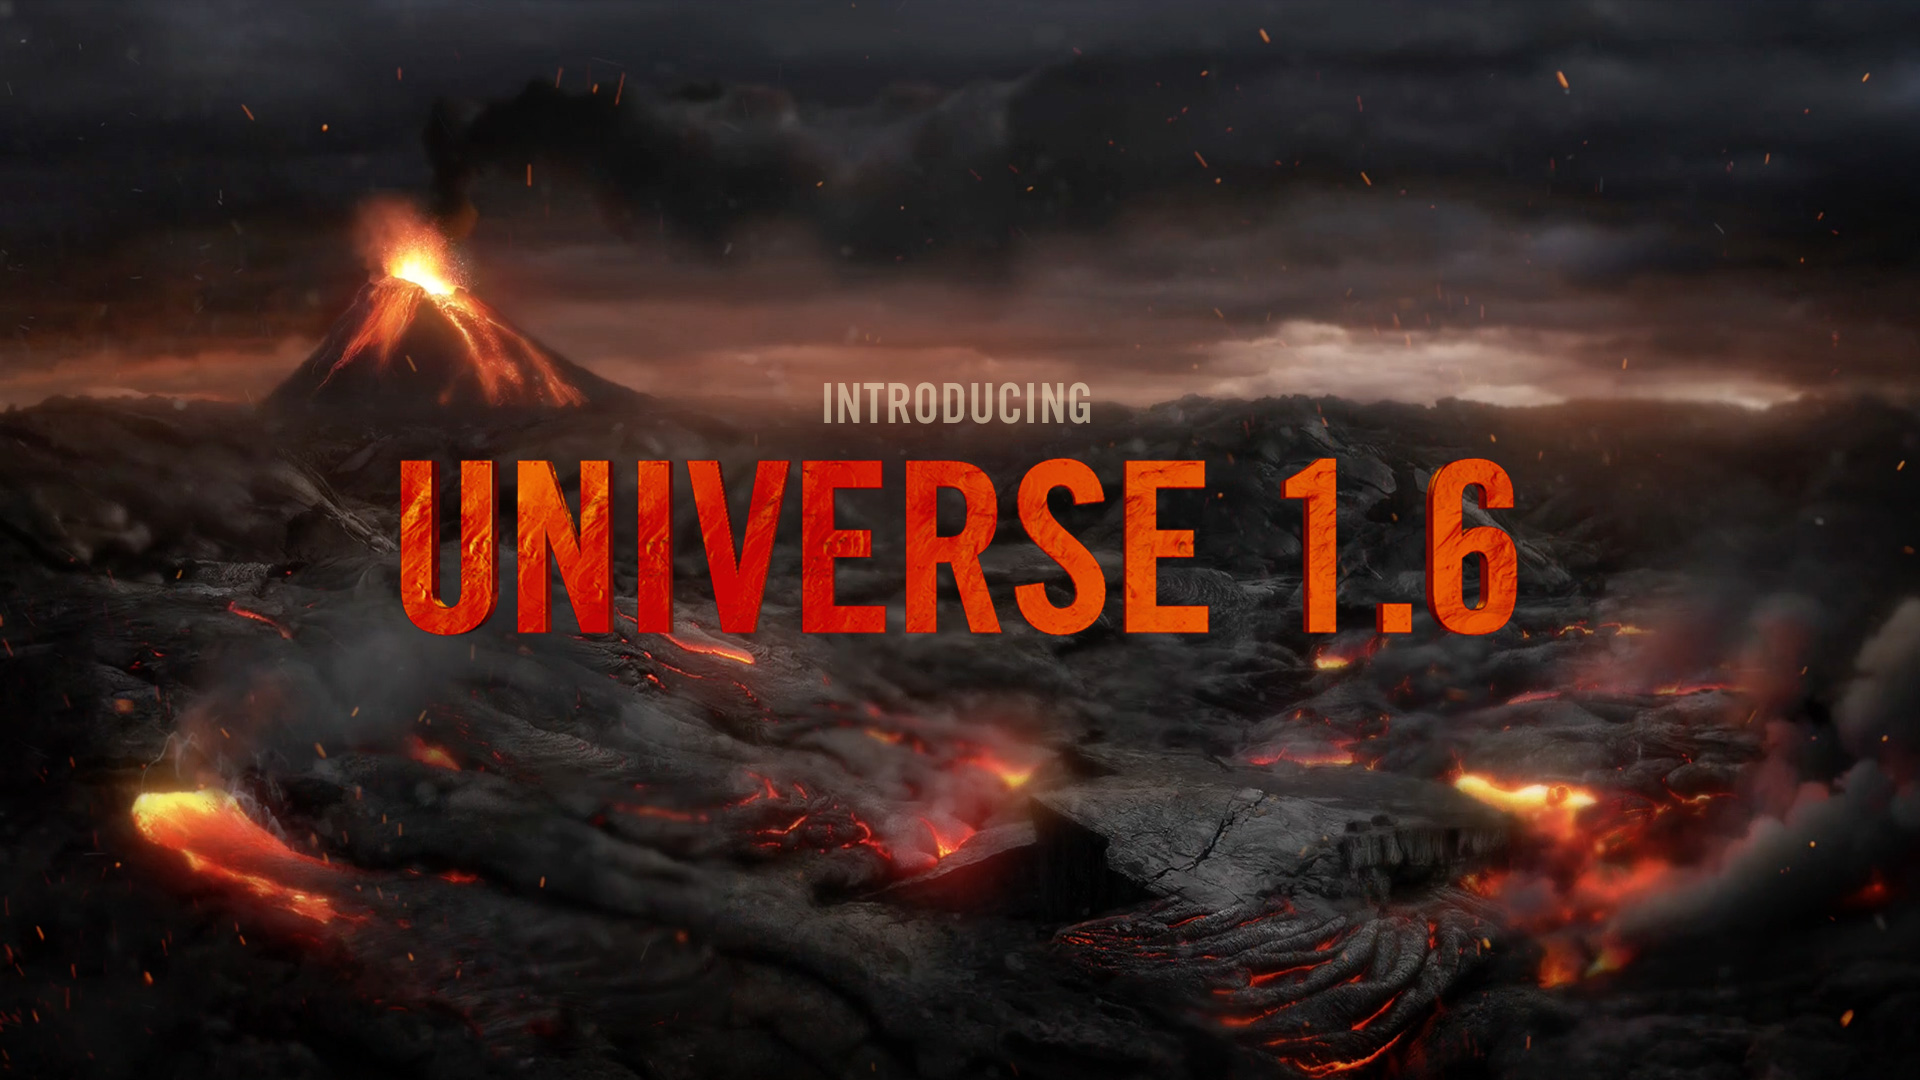 Glow Plug Light >> Red Giant | UPDATE | Red Giant Universe 1.6